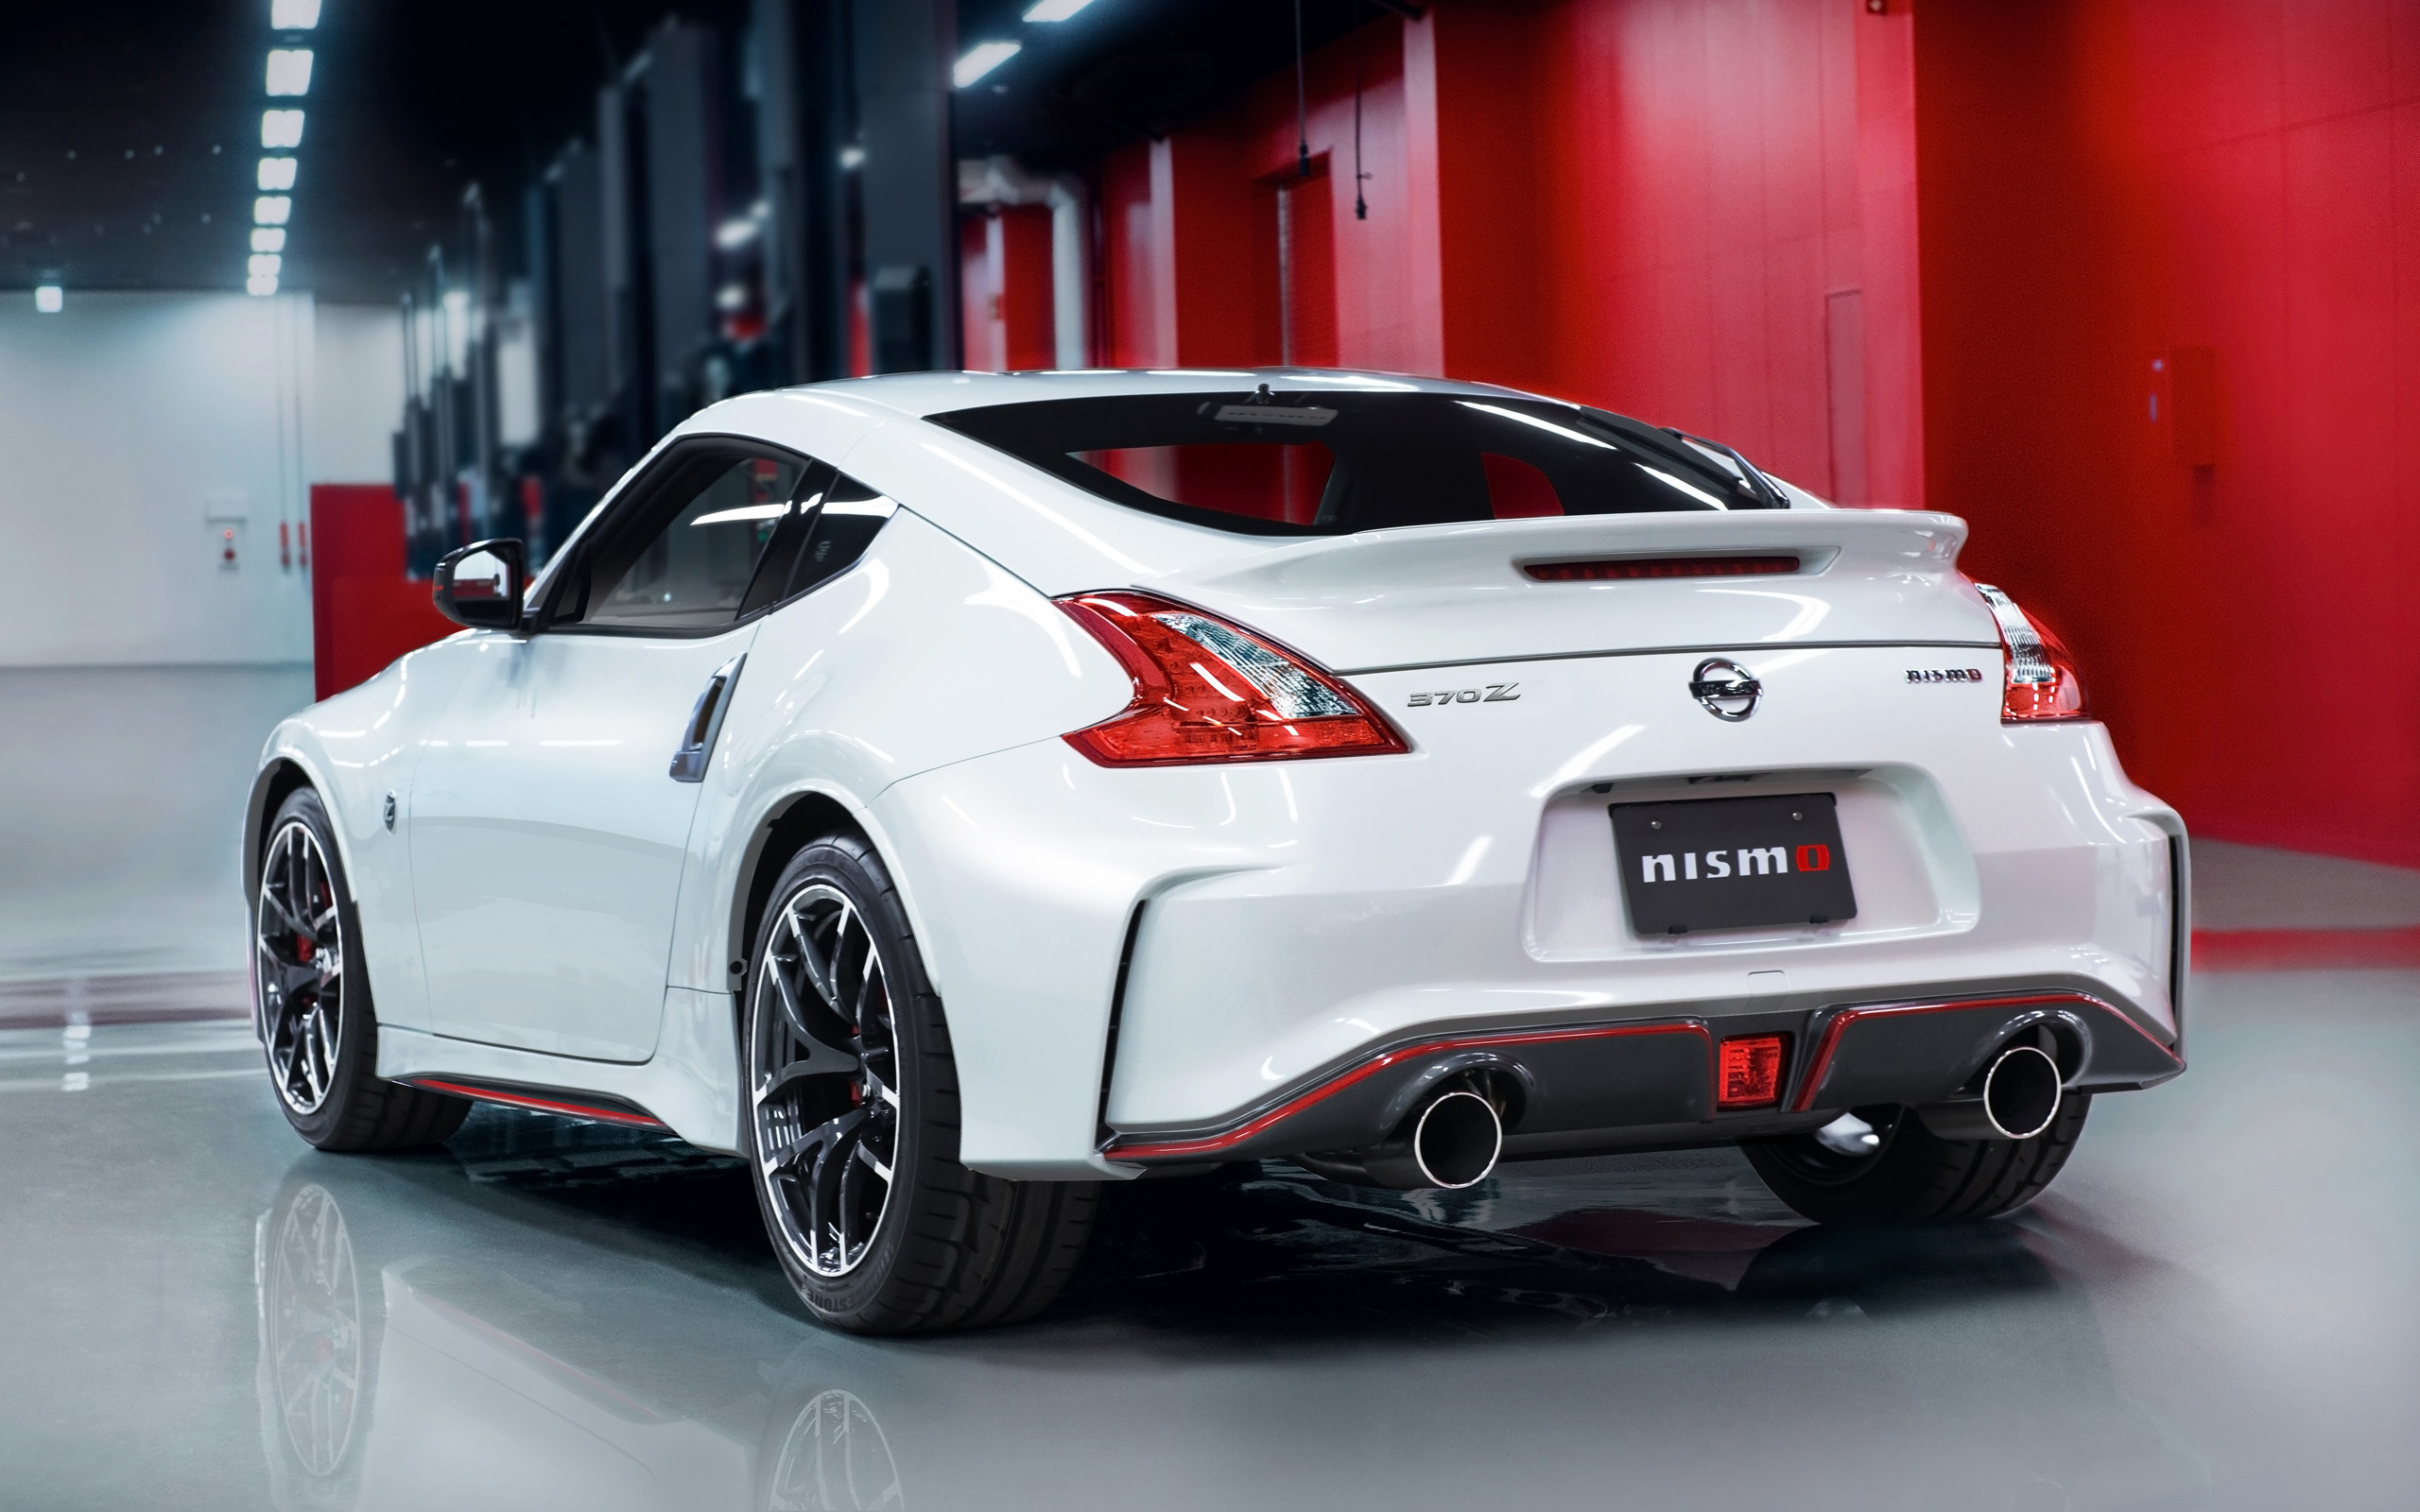 2015 Nissan 370Z NISMO 4 Wallpaper HD Car Wallpapers 2560x1600